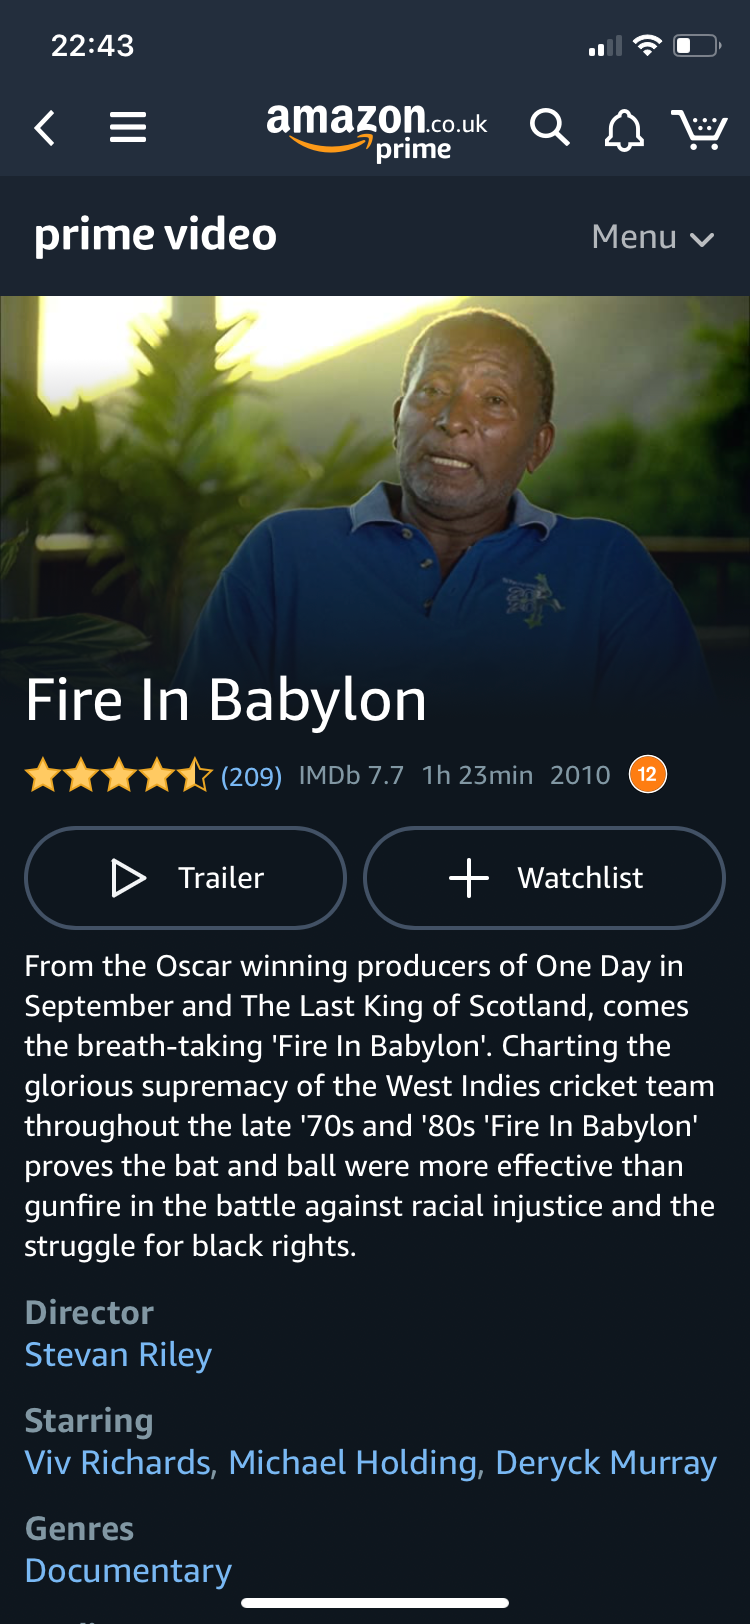 Screenshot of a webpage about Fire in Babylon